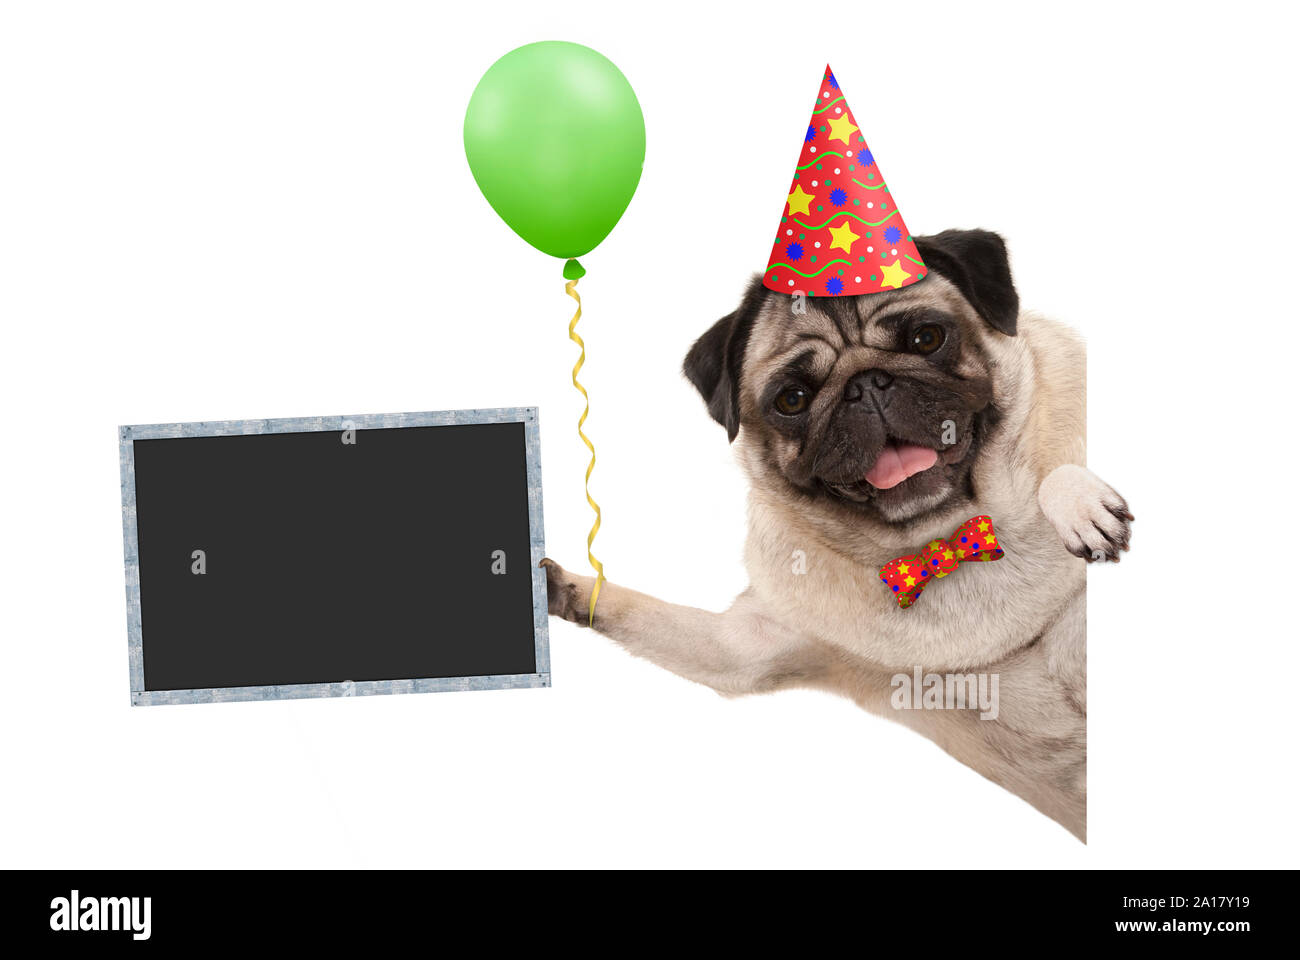 frolic smiling birthday party pug dog, with balloon and hat decoration holding blank blackboard sign, isolated on white background Stock Photo